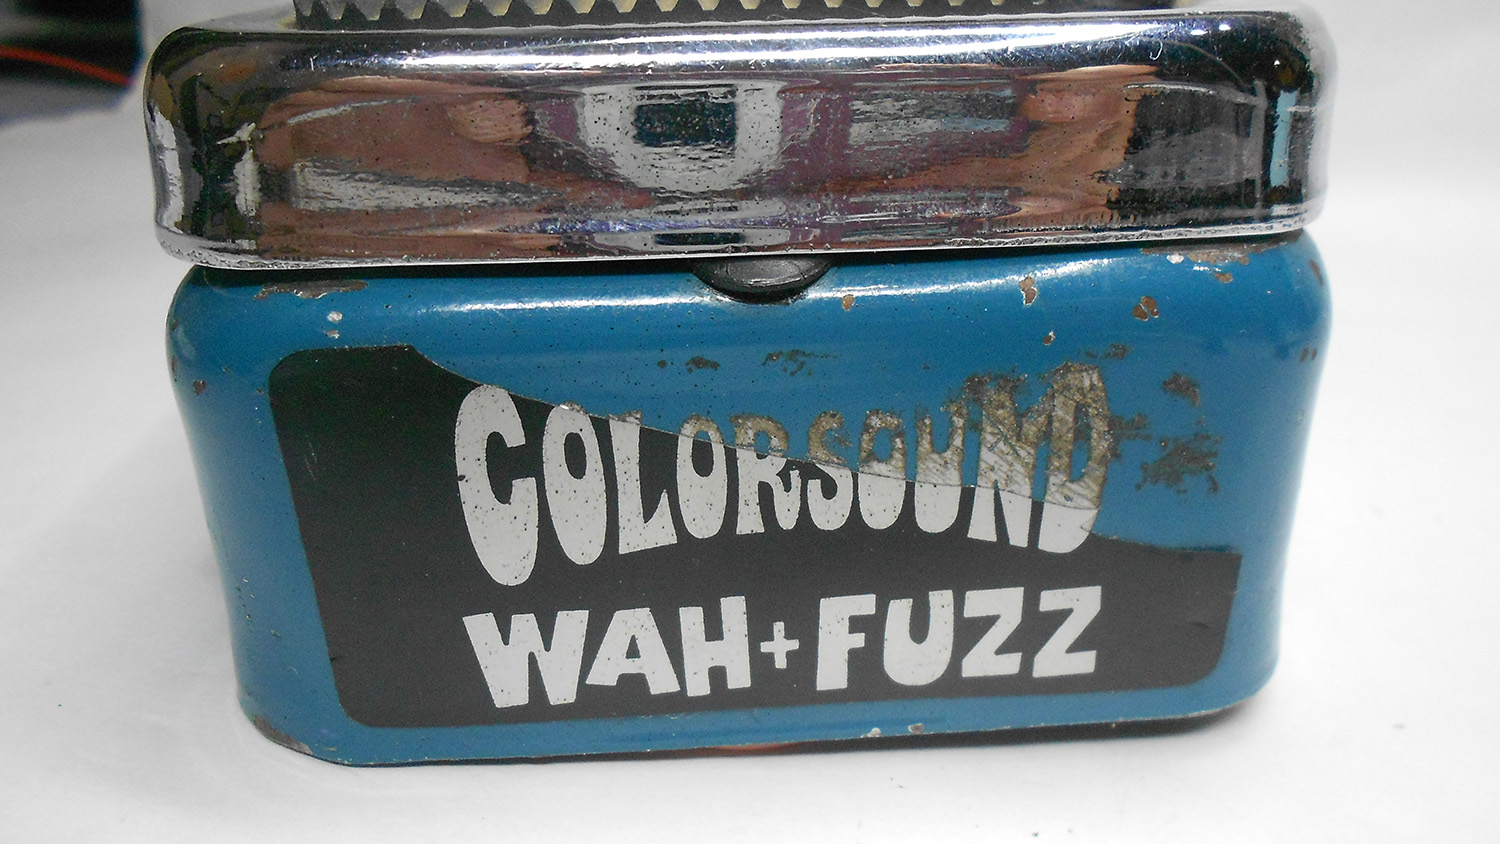 Colorsound Fuzz+Wah Wire it up - 9